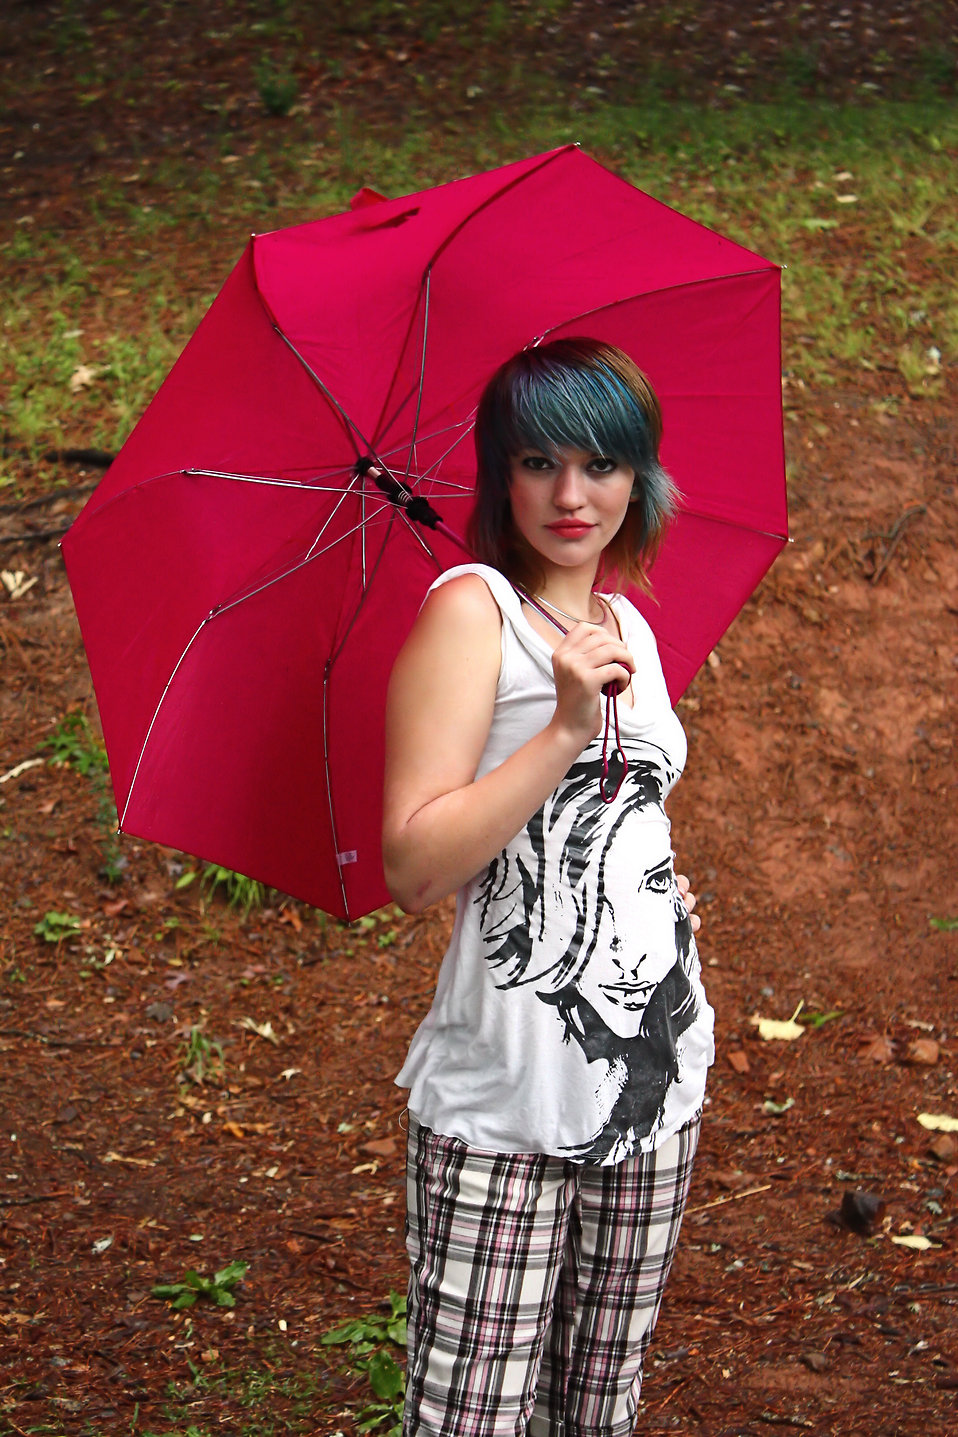 A beautiful young woman posing with an umbrella : Free Stock Photo